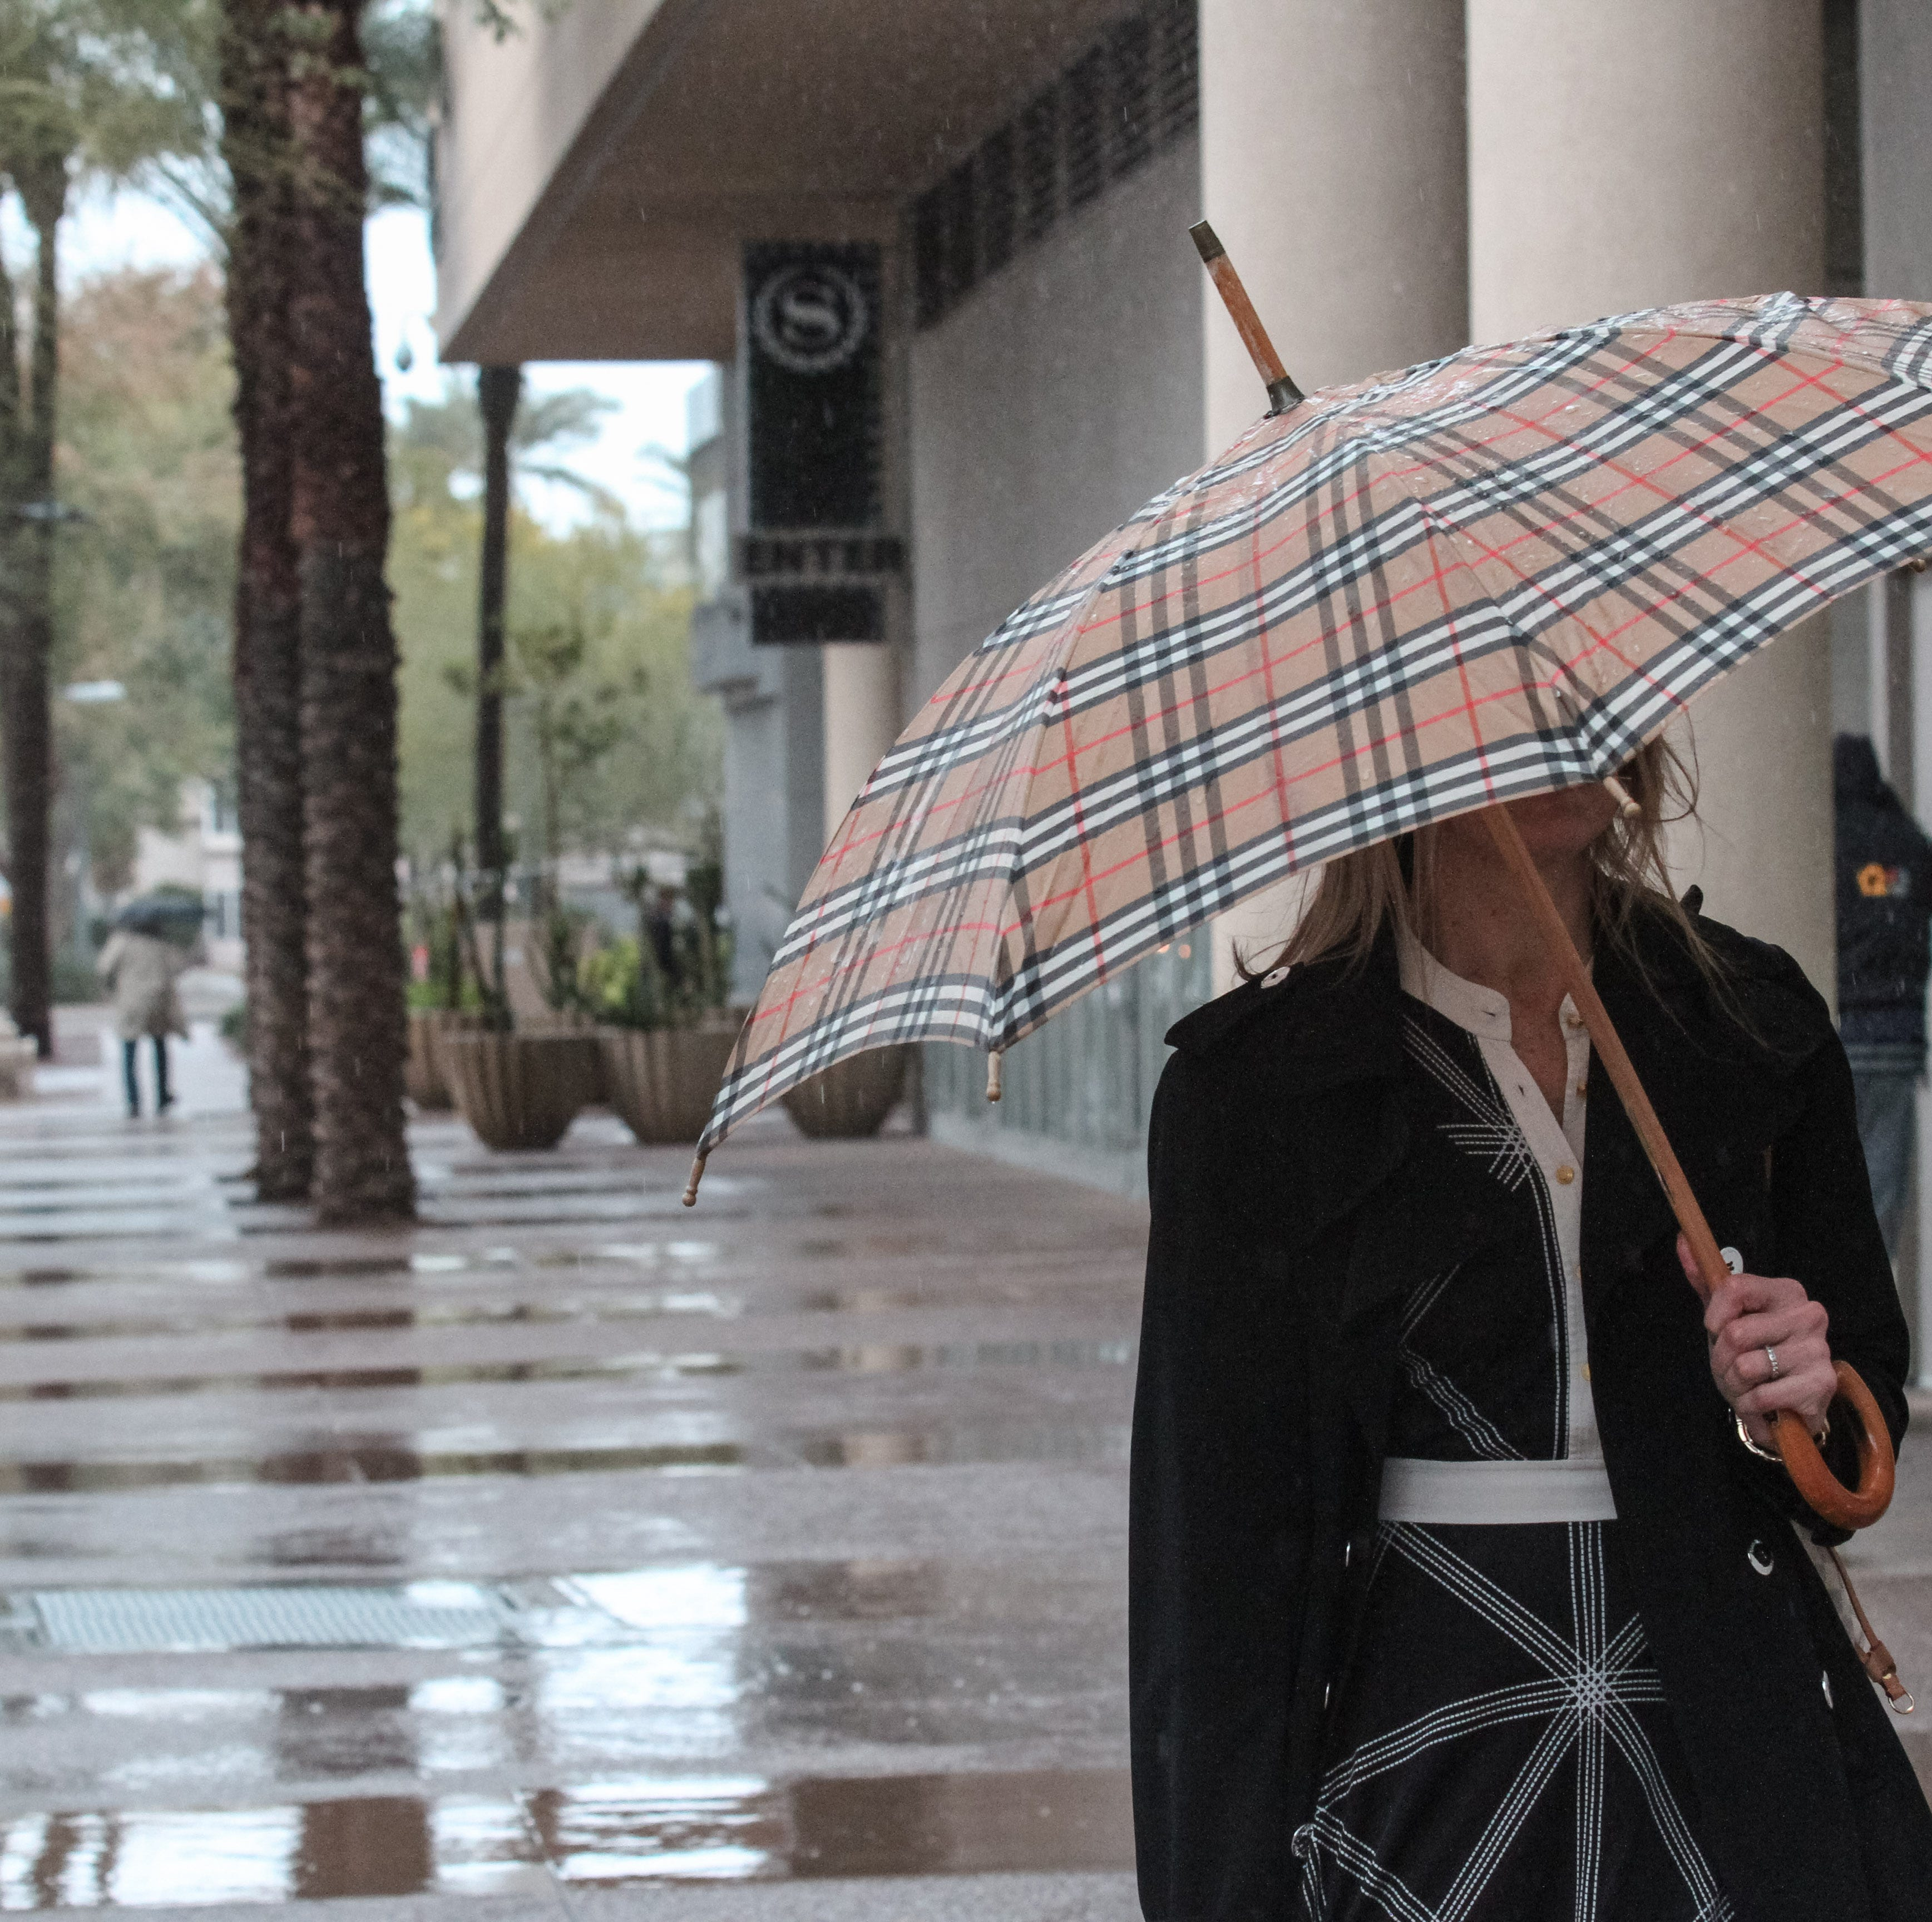 Rain expected to hit the Phoenix area by late afternoon, last through Wednesday